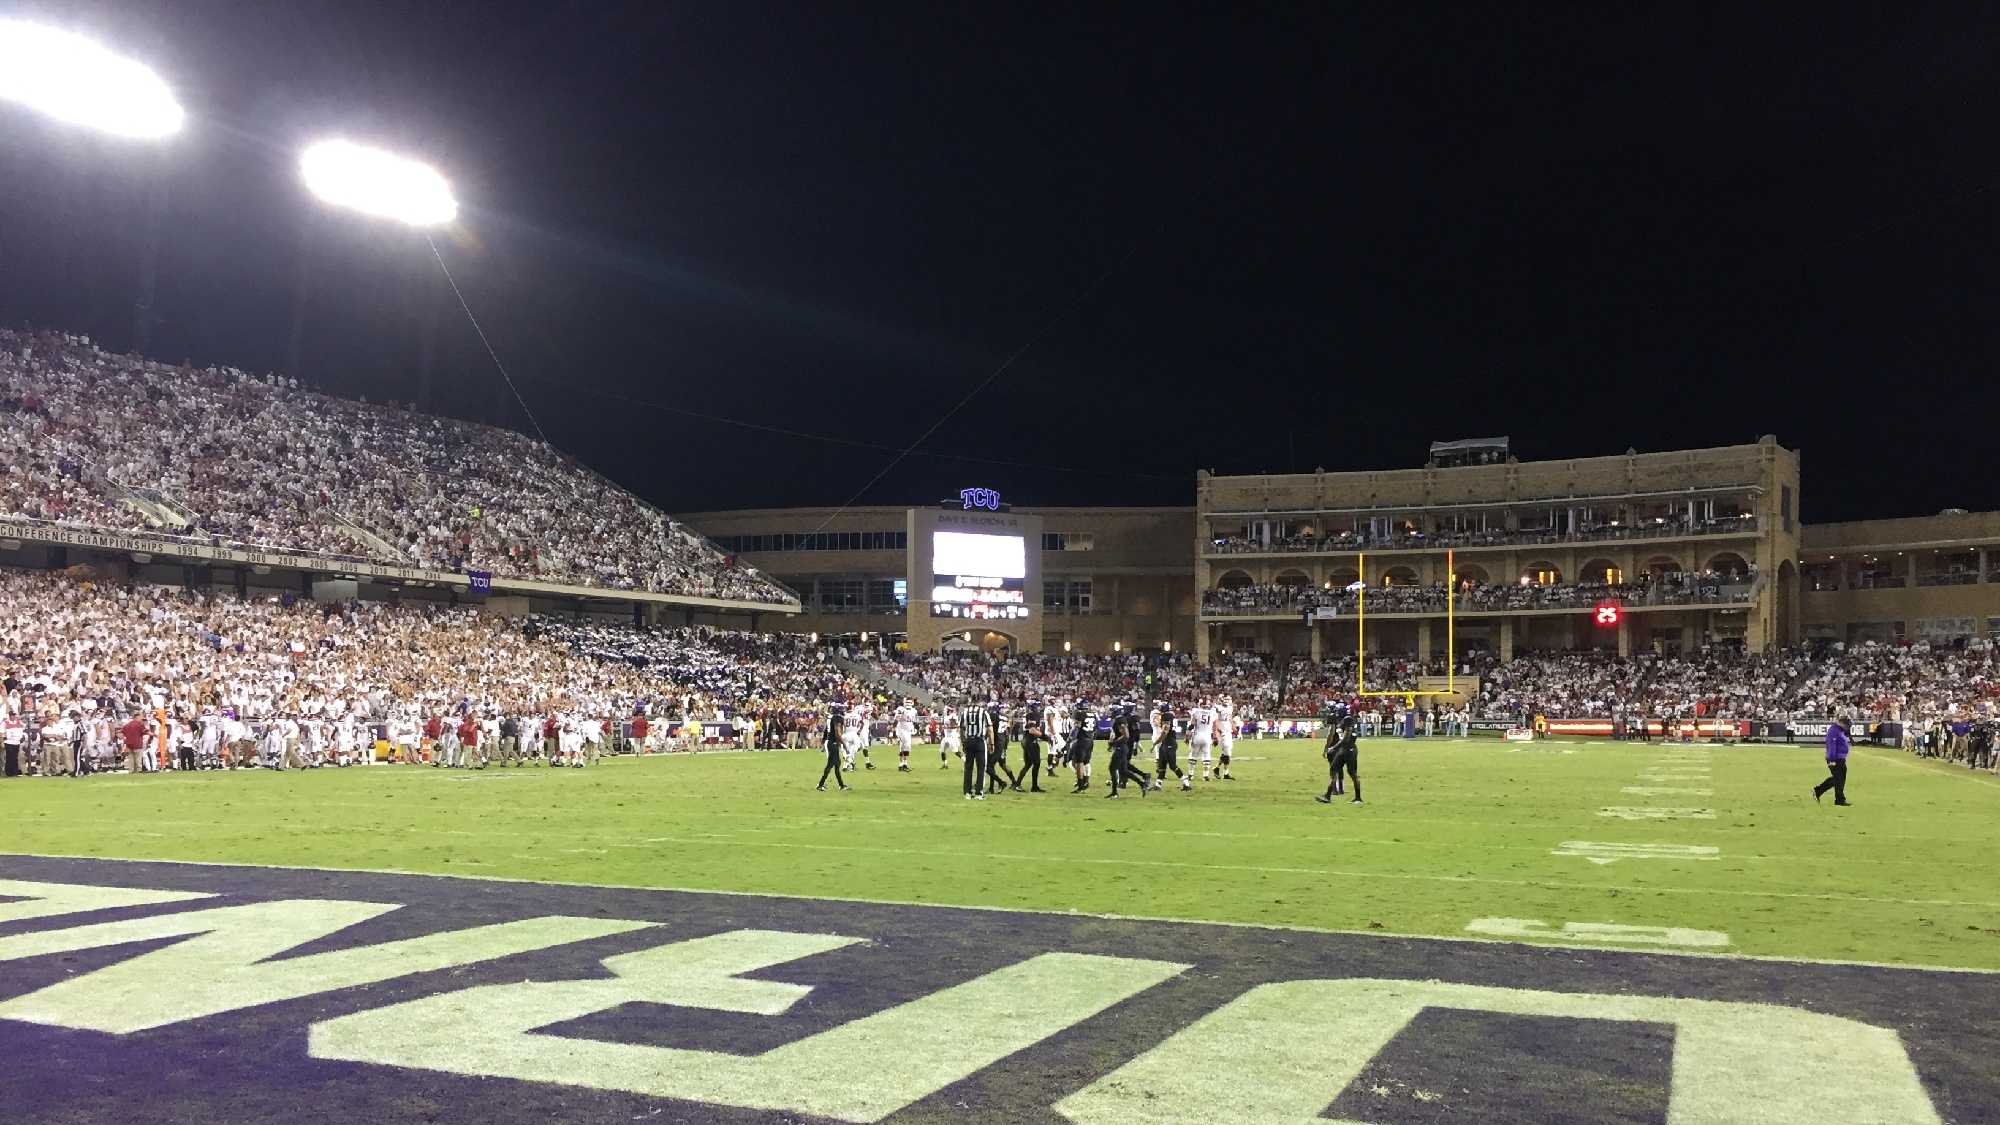 Hogs travel to Amon G. Carter Stadium in Fort Worth to take on their first ranked opponent of the year, TCU